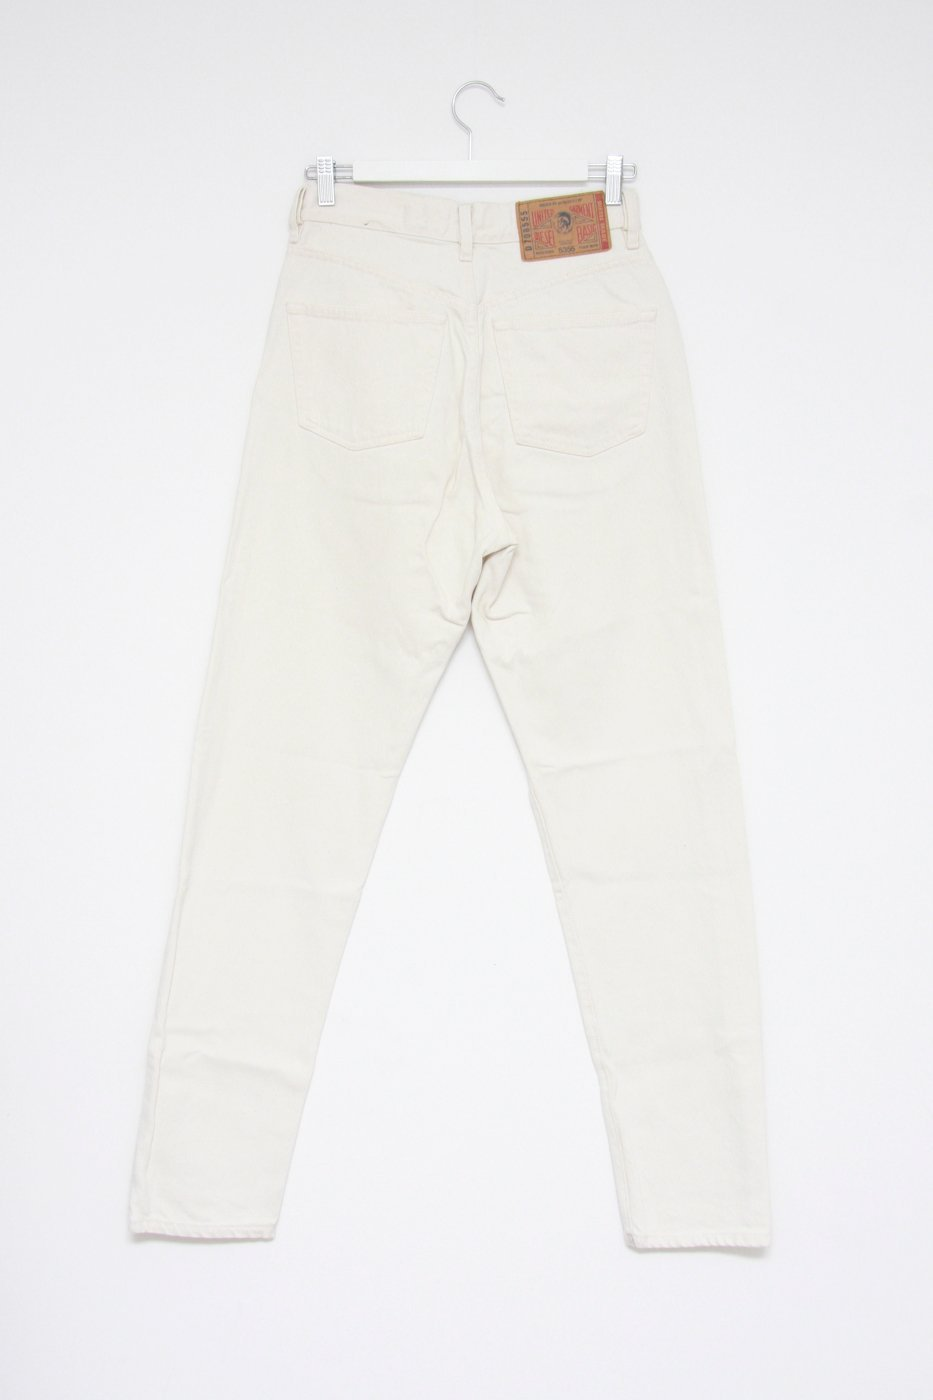 0470_DIESEL VINTAGE W30 OFF WHITE MOM JEANS